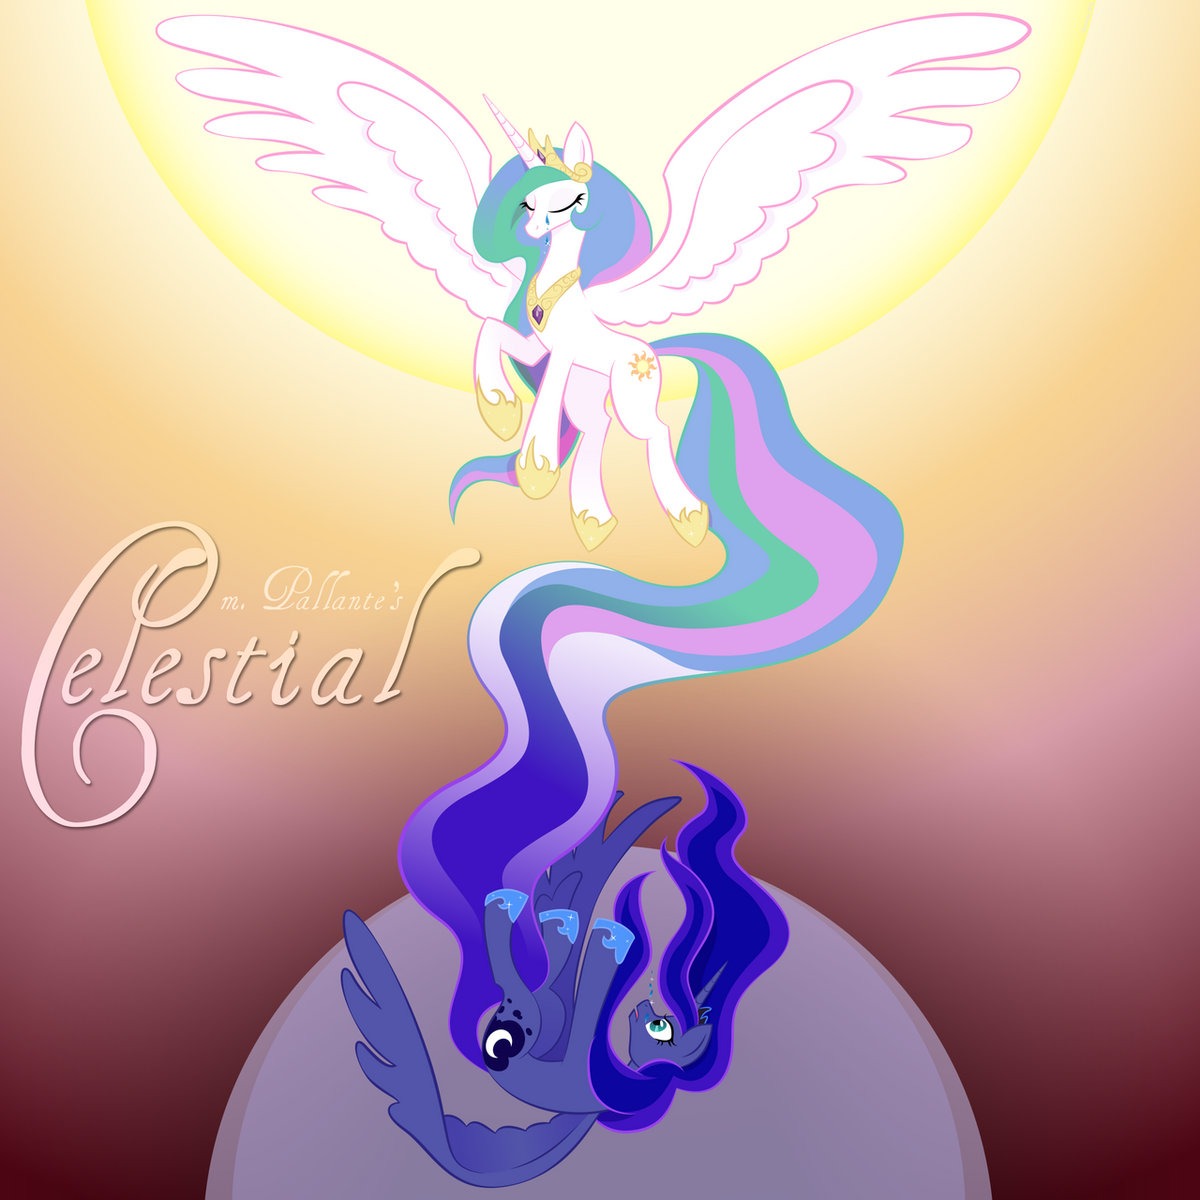 celestial music inspired by my little pony friendship is magic